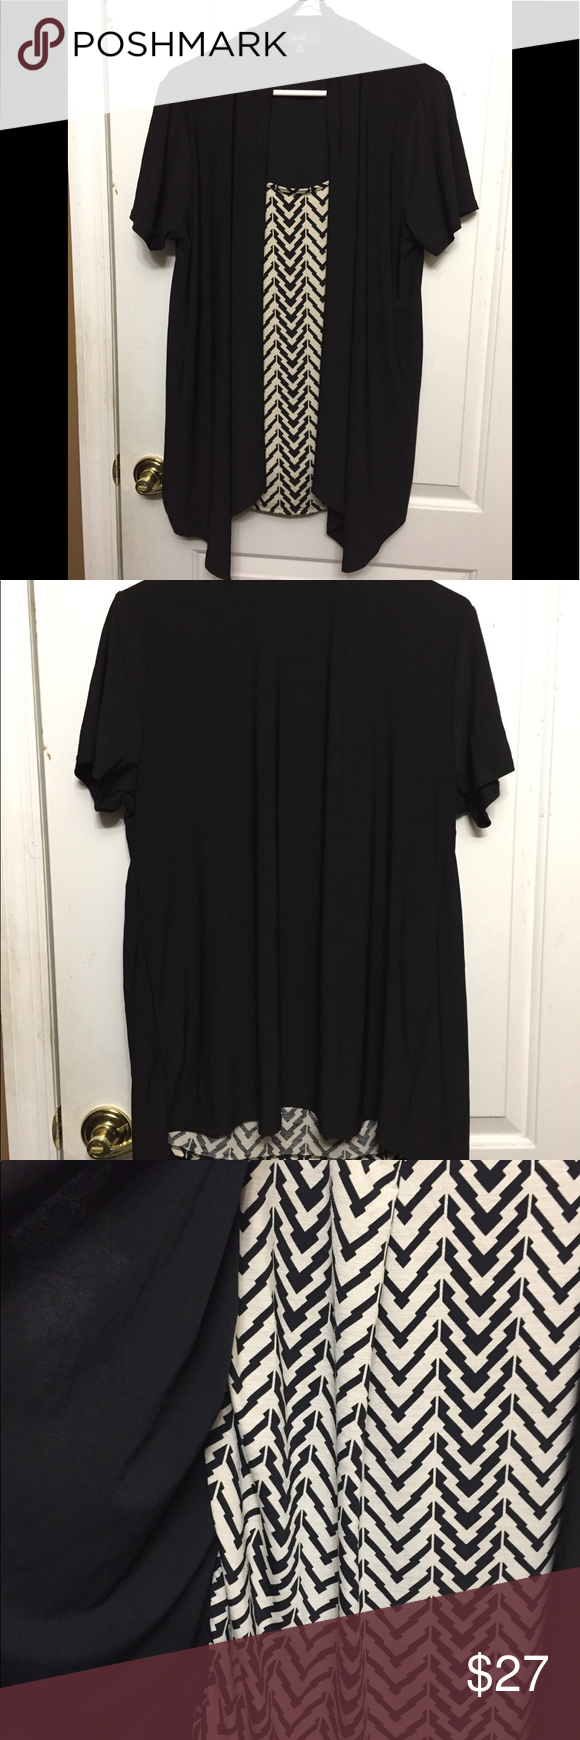 Naïf Dressy Black and Beige Blouse Naïf Dressy Black and Beige Blouse One shirt with a black cover . It is great for a office or dressy event.  Made…